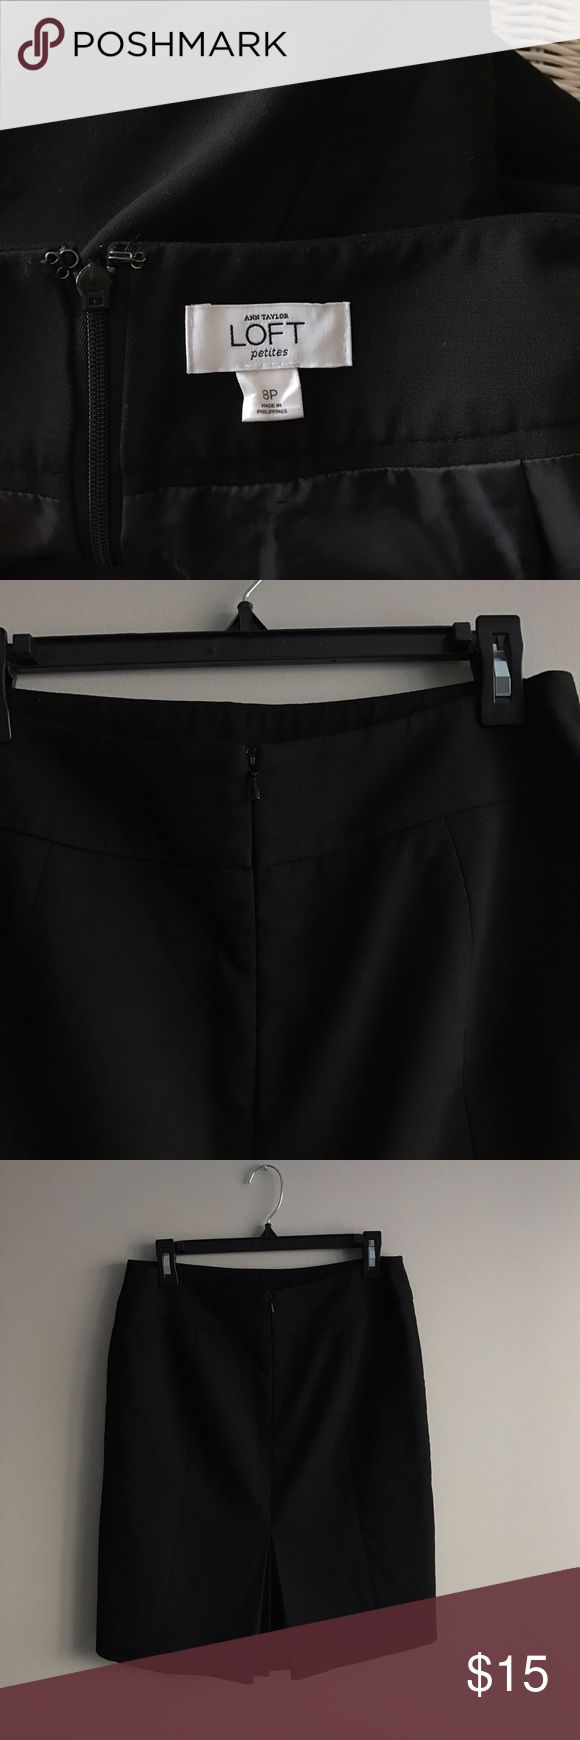 Ann Taylor LOFT petites pencil skirt Preowned condition. No stains or rips. Smoke and pet free zone. LOFT Skirts Pencil